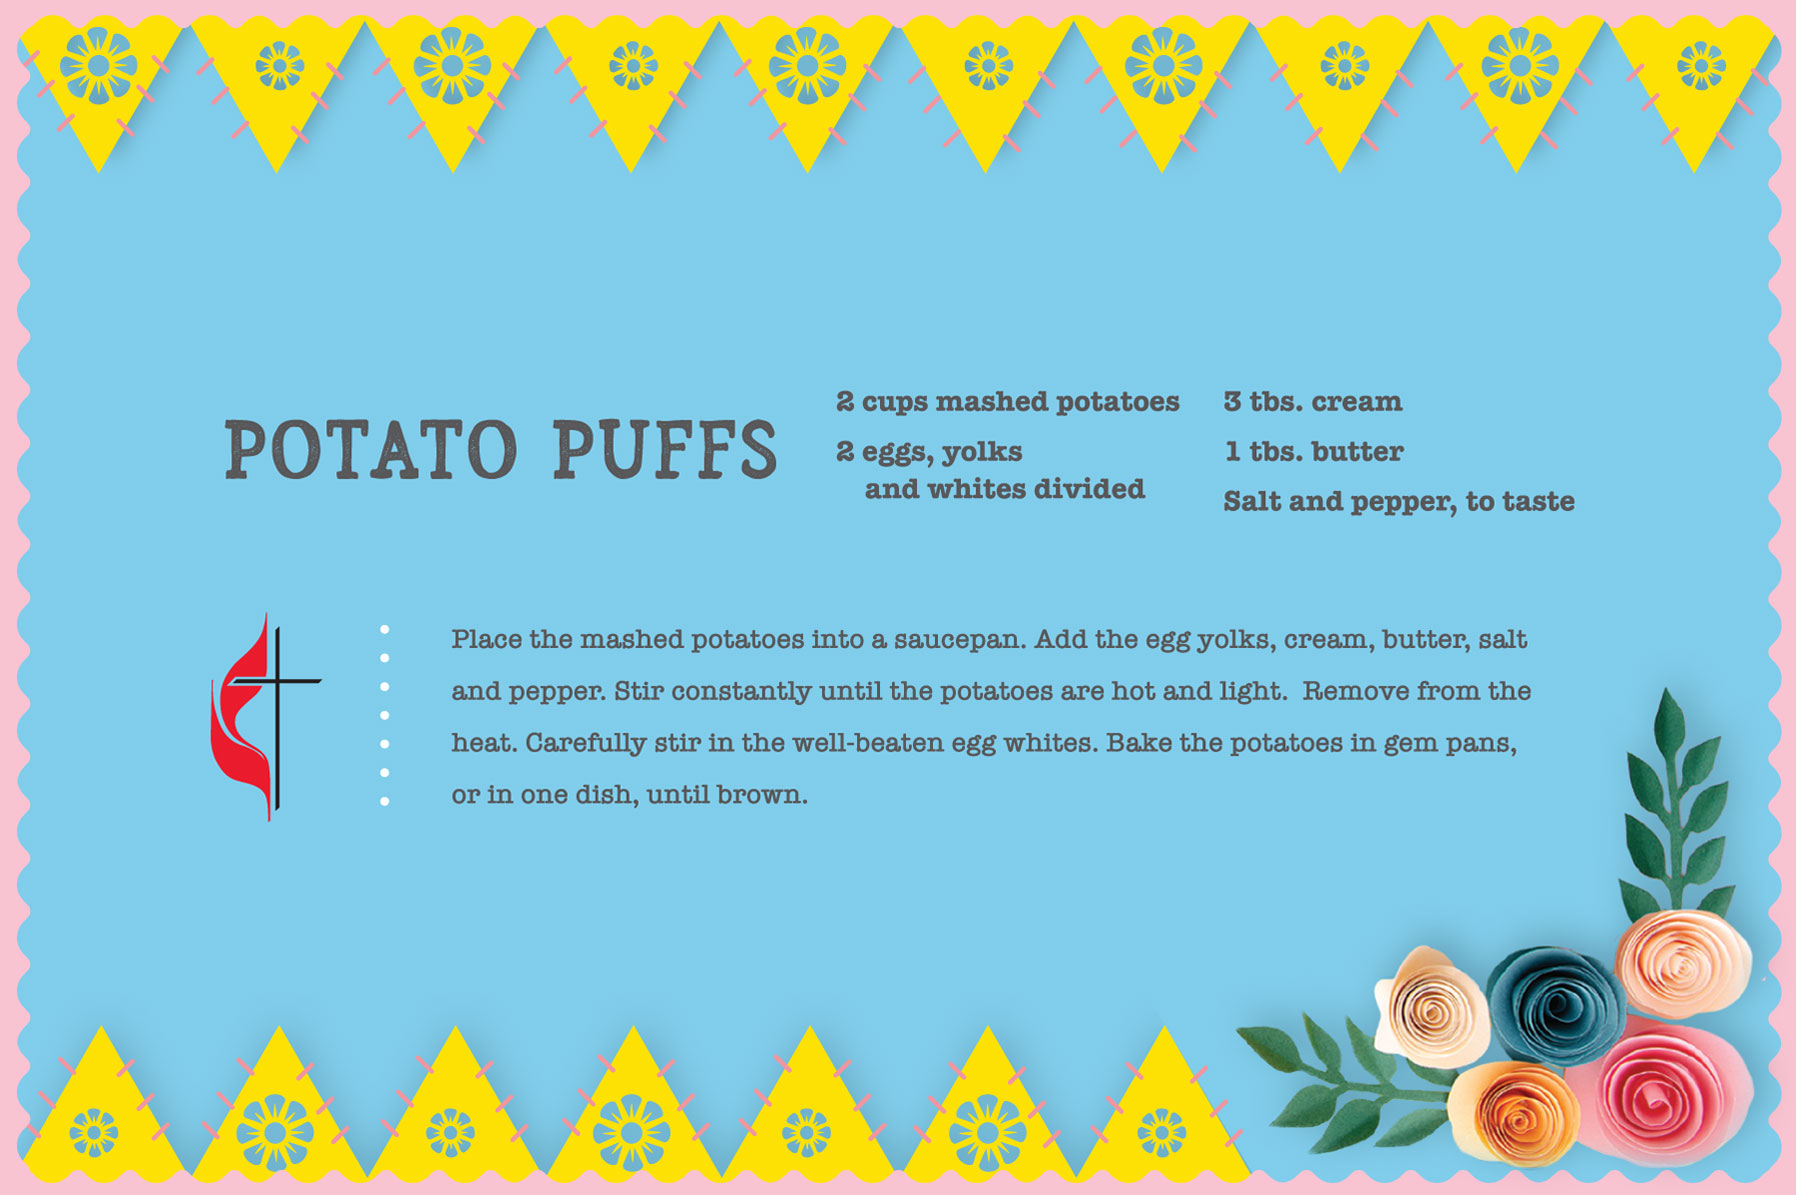 Vintage potato puffs recipe for Easter. Design by Sara Schork, United Methodist Communications